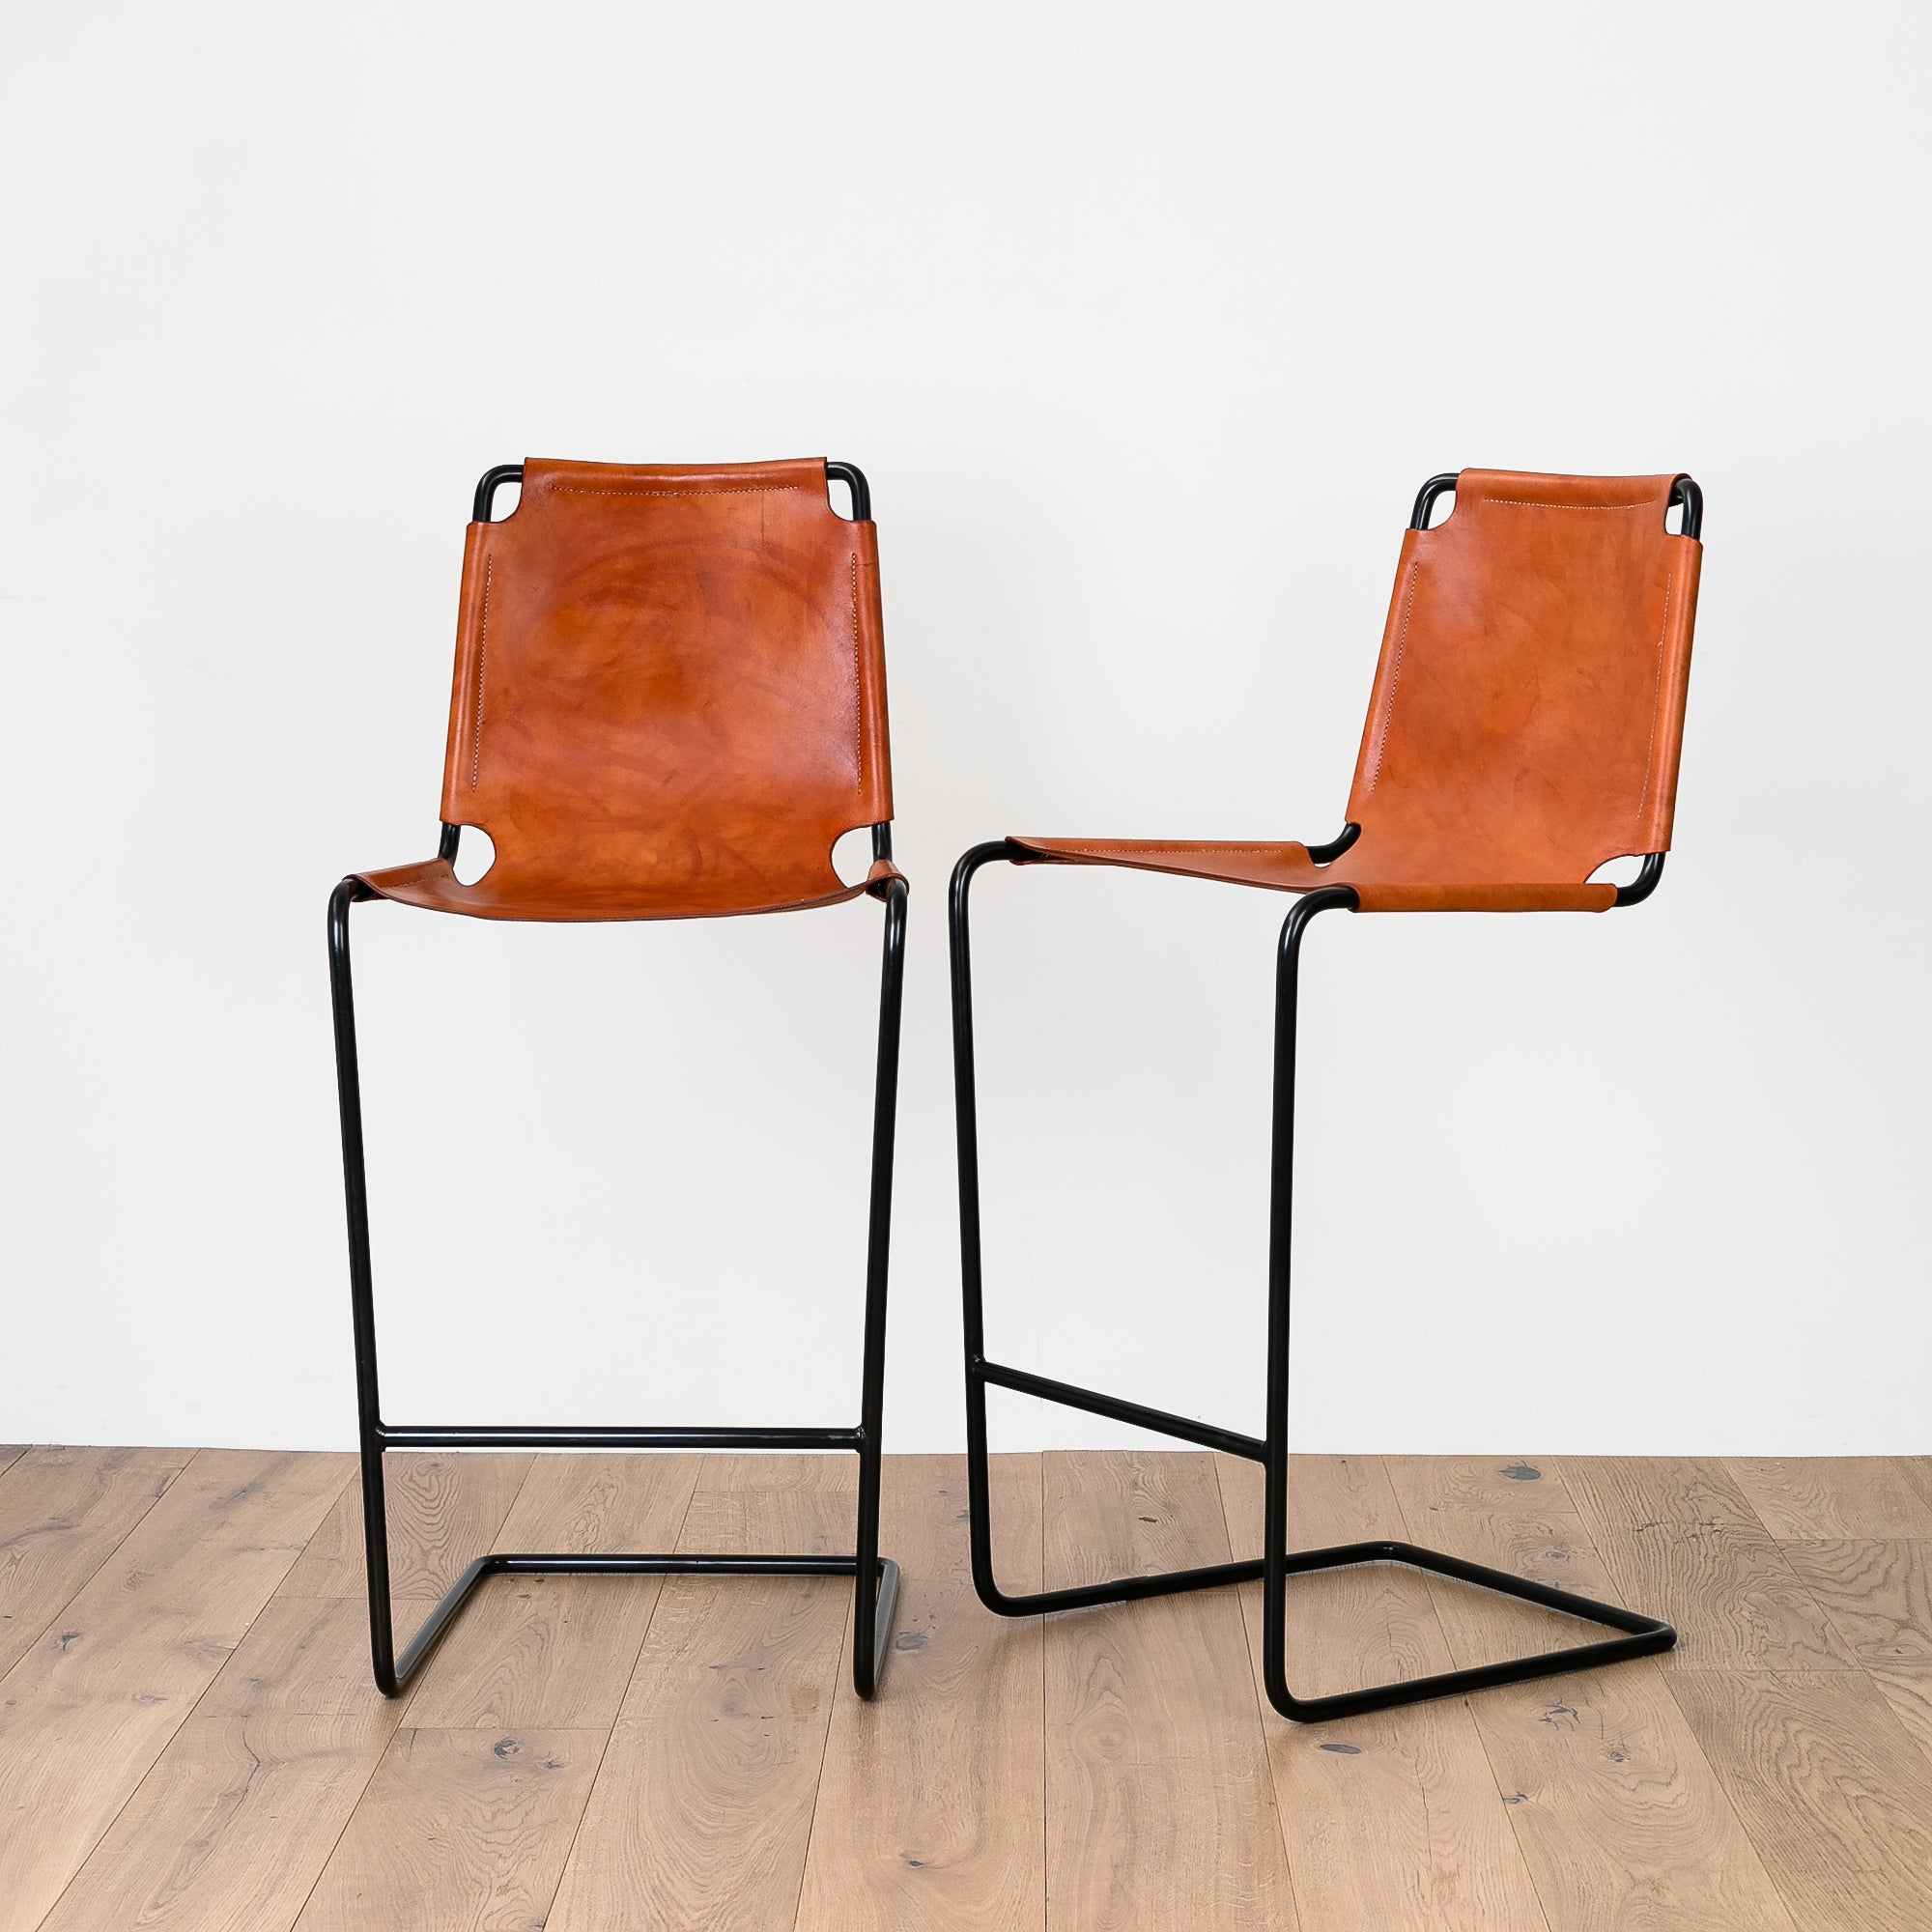 Awesome Iron Bar Chair